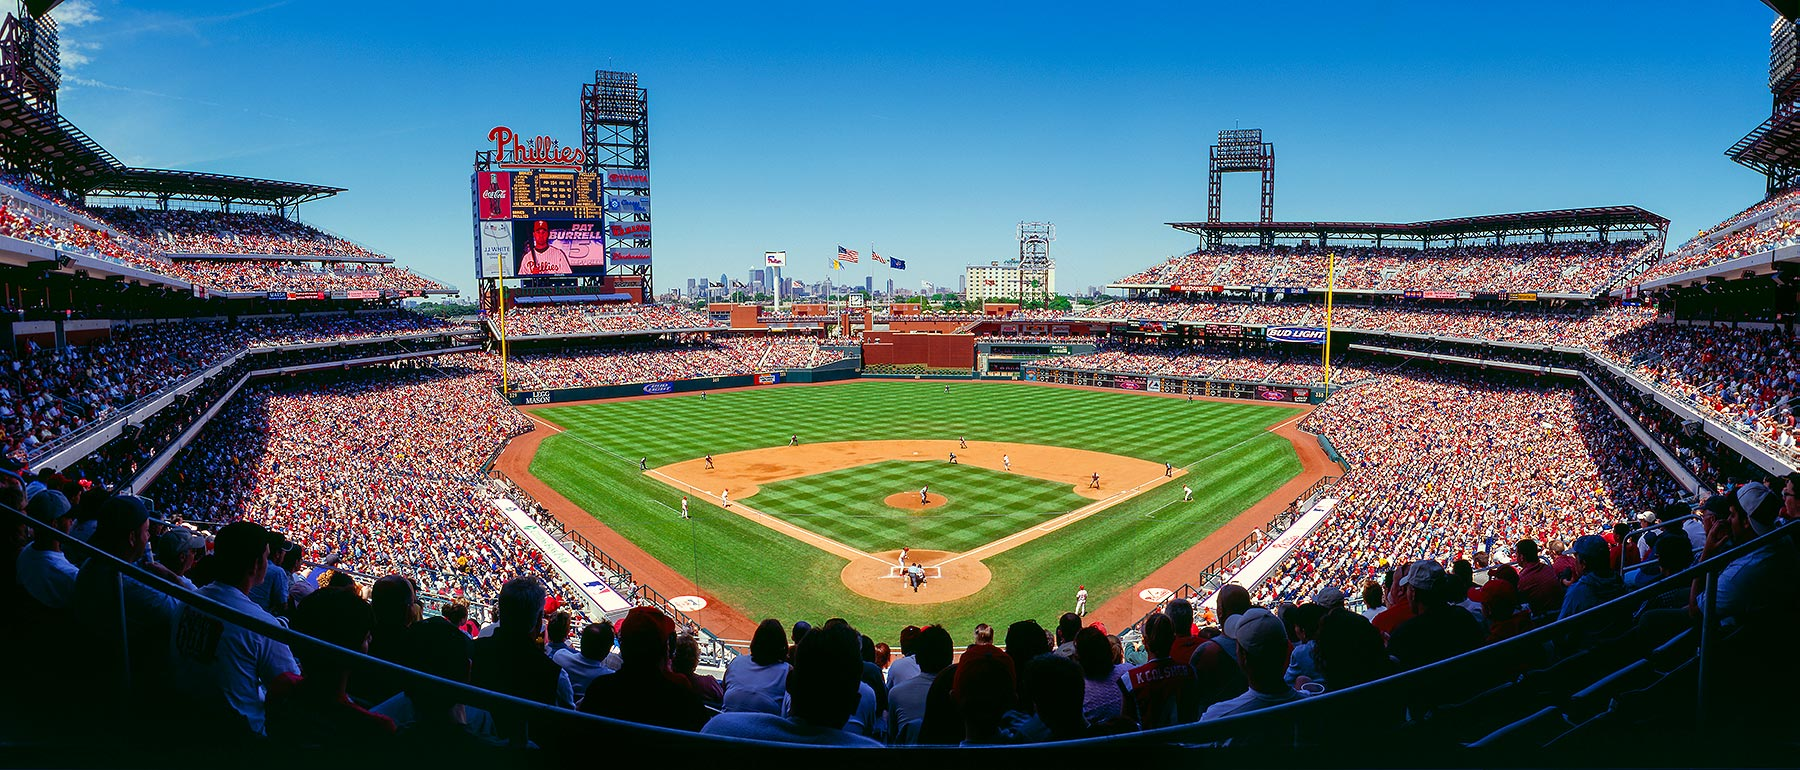 Education stadia and arenas sports and leisure healthcare residential - Citizen S Bank Park Ewing Cole Philadelphia